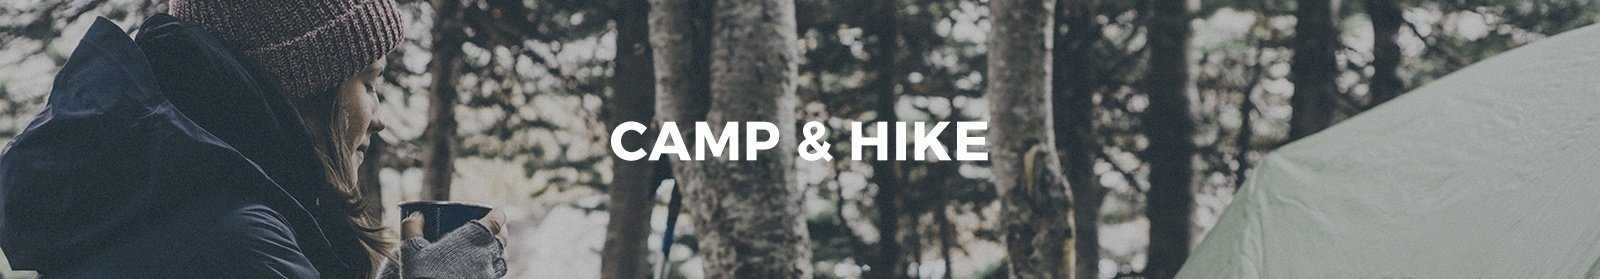 Gear til Camp & Hike